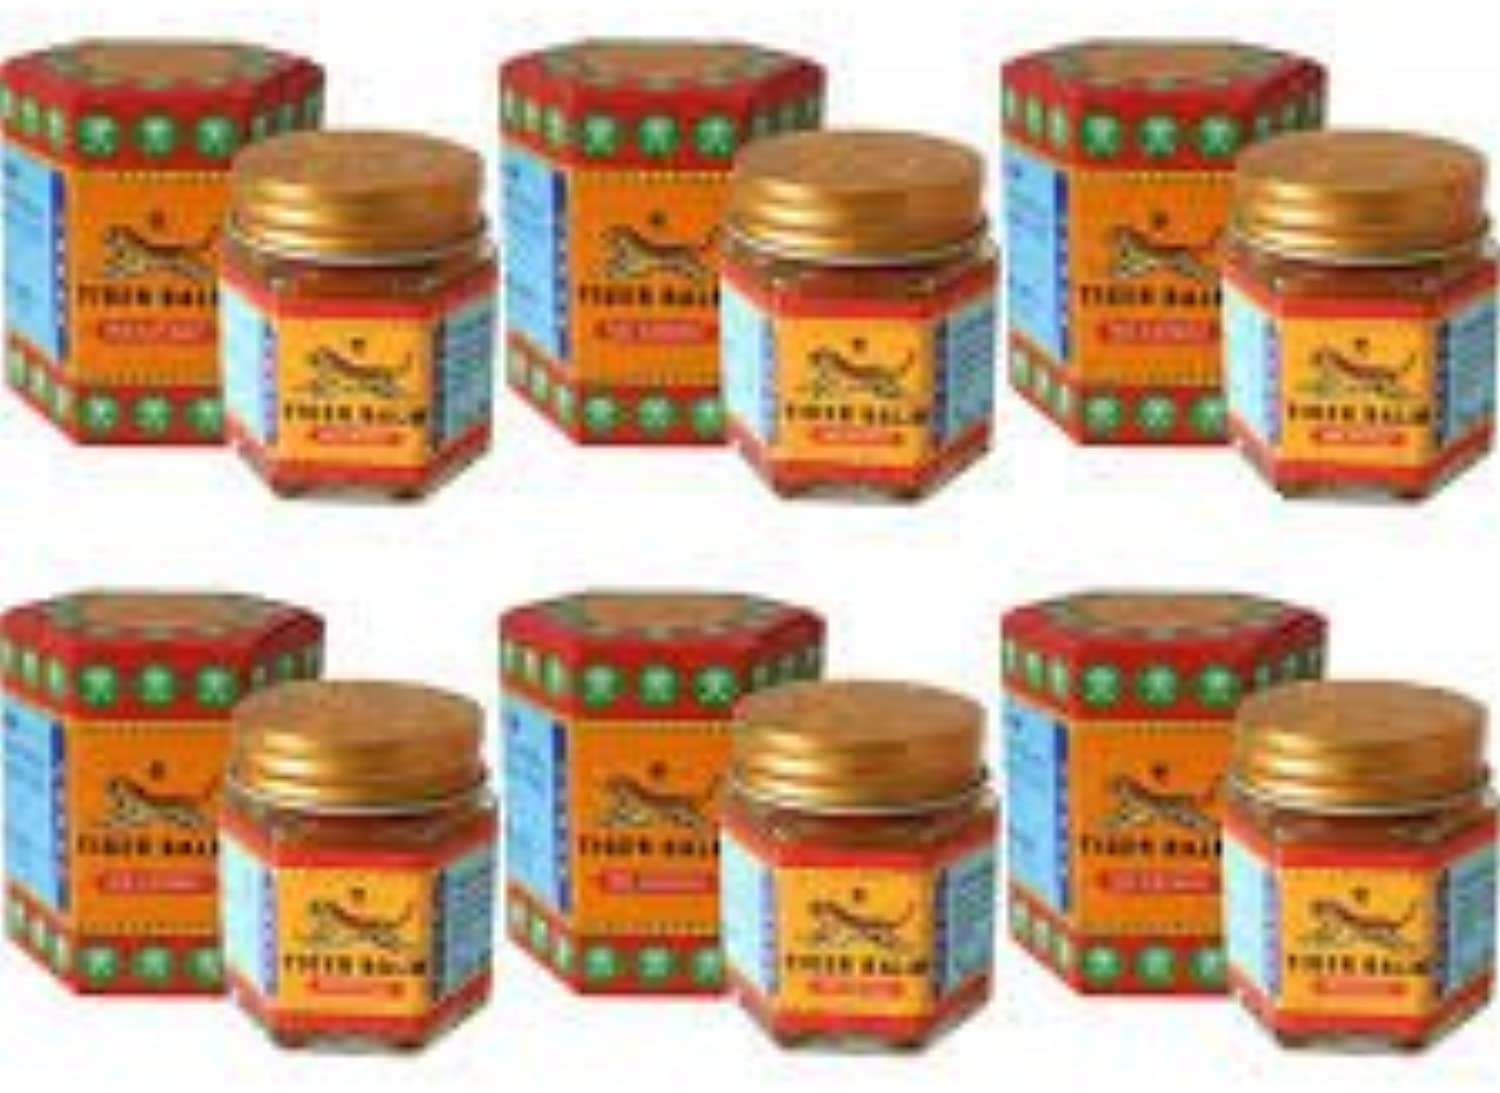 Tiger Balm Red Size 30g. Original Thai Massage 6 Big Jars for pain relief & insect bites